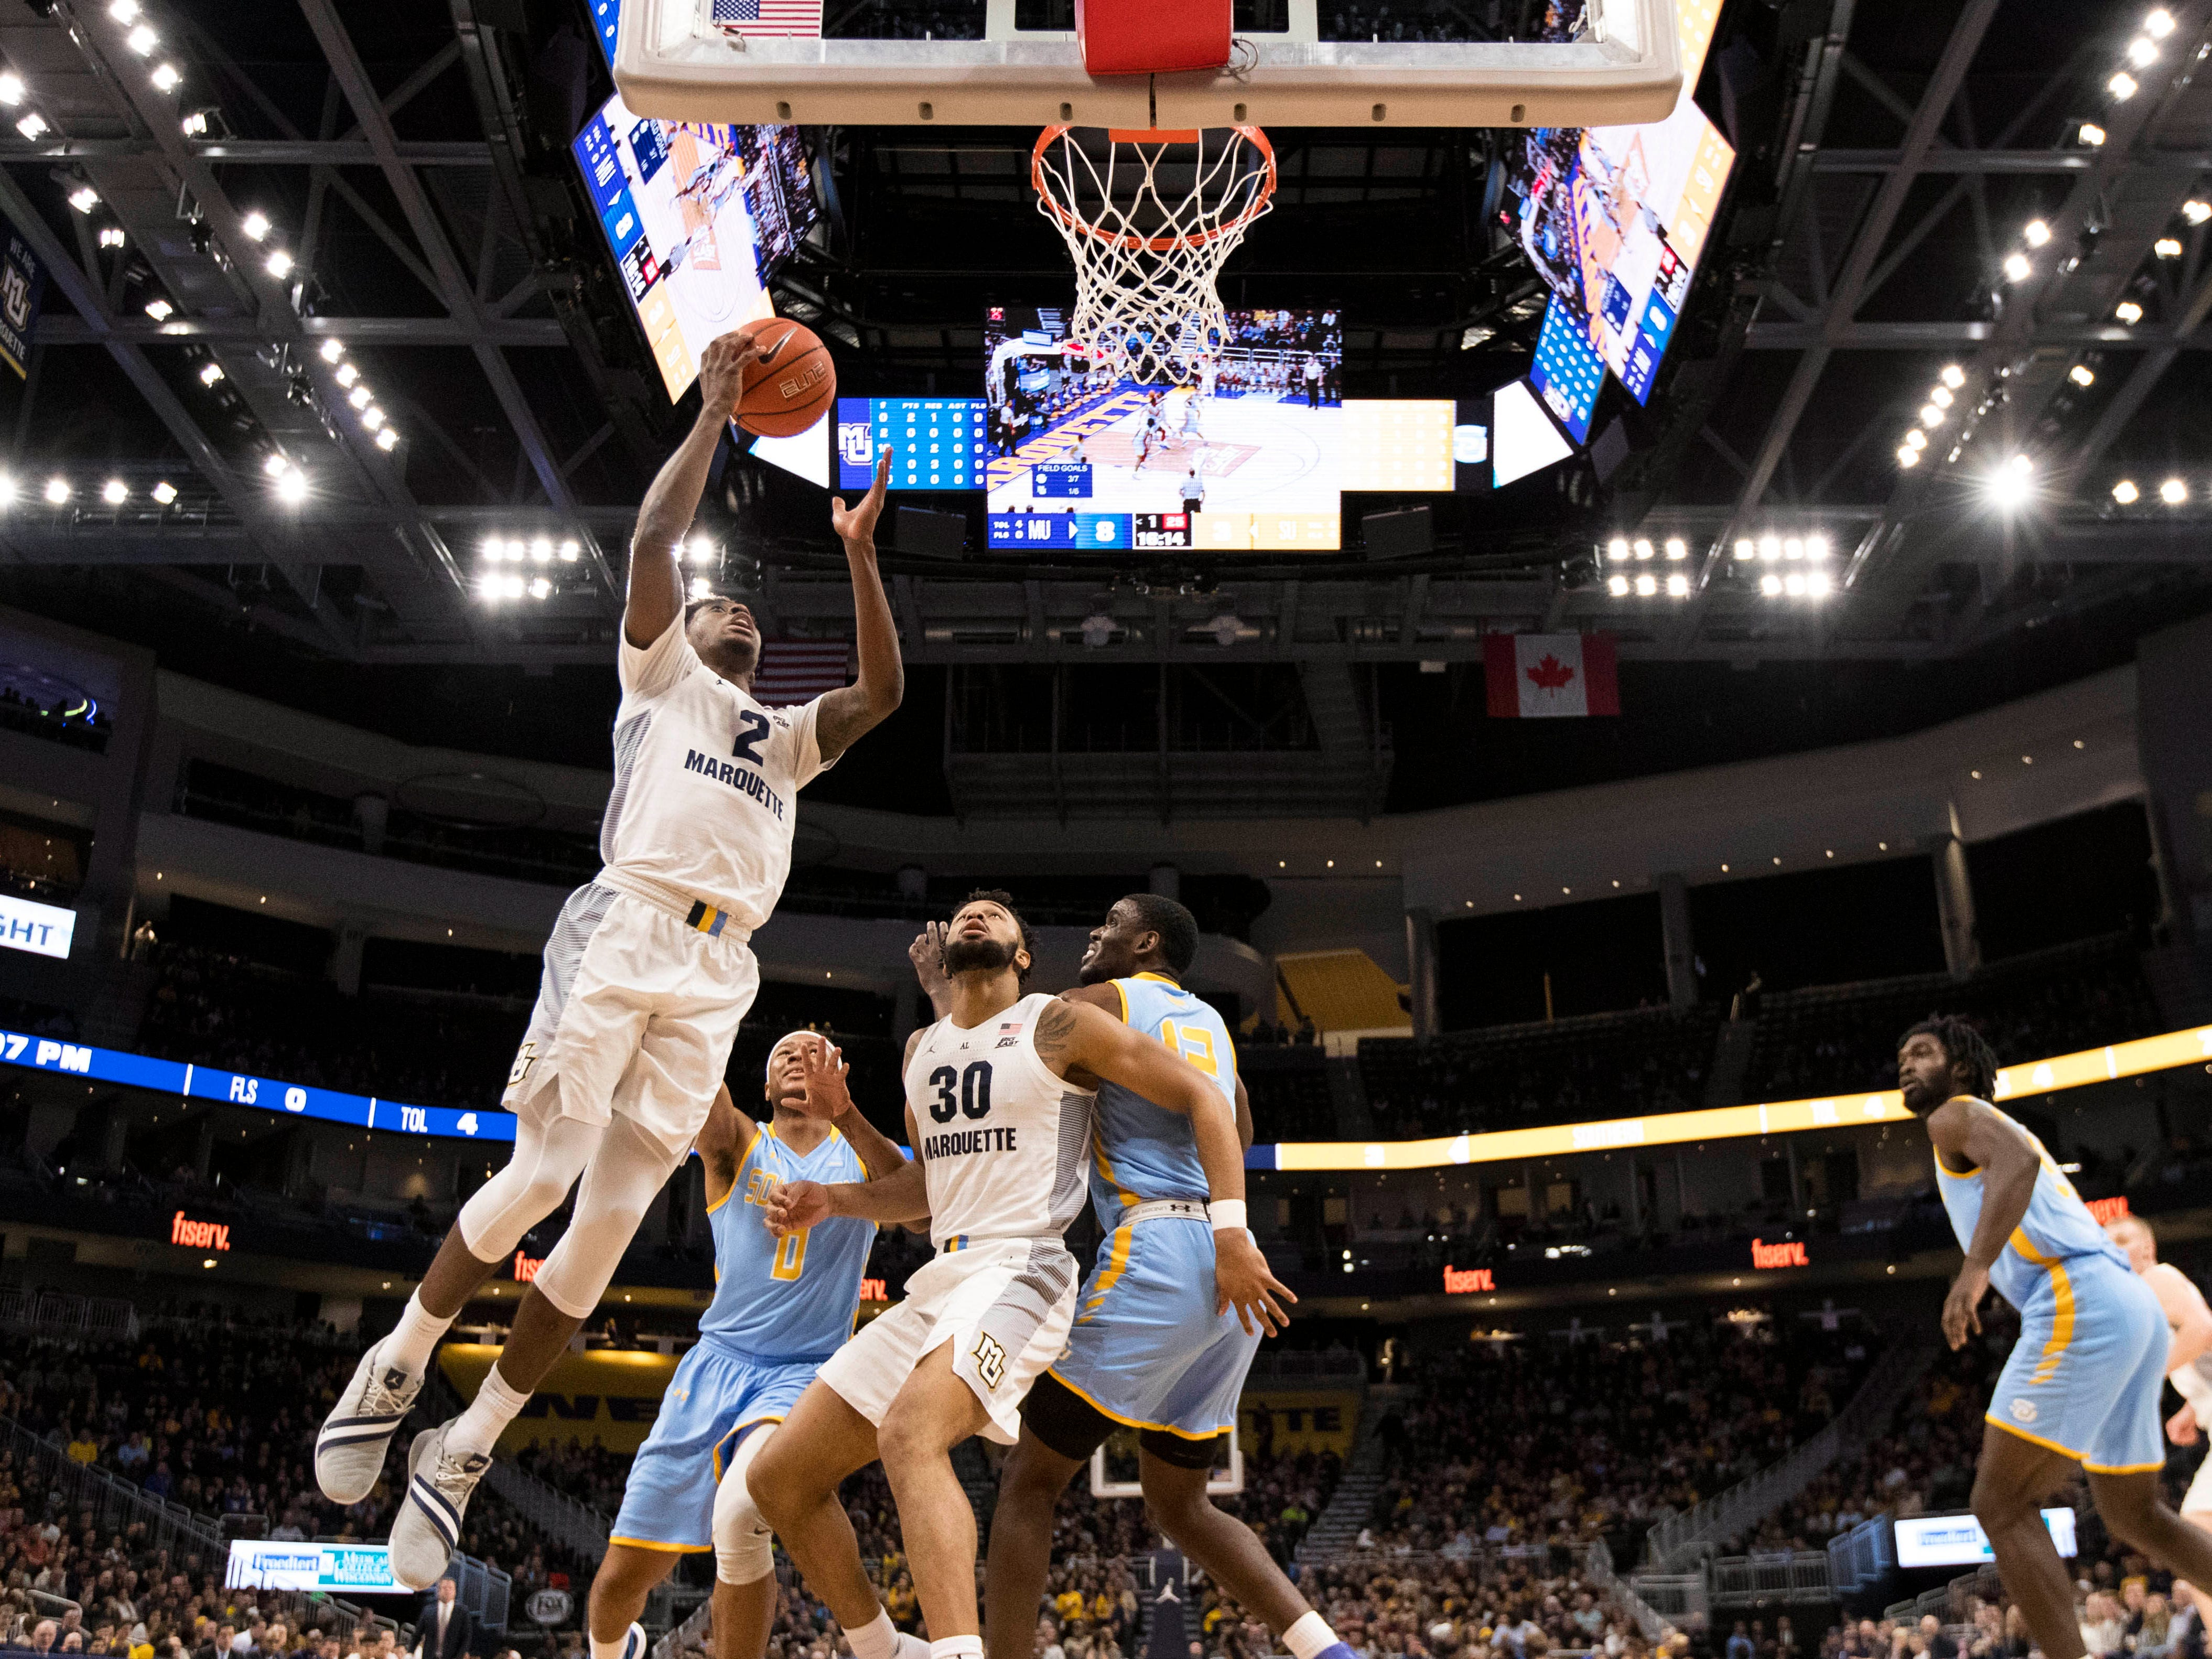 Marquette forward Sacar Anim goes up for an easy bucket against Southern on Friday night.